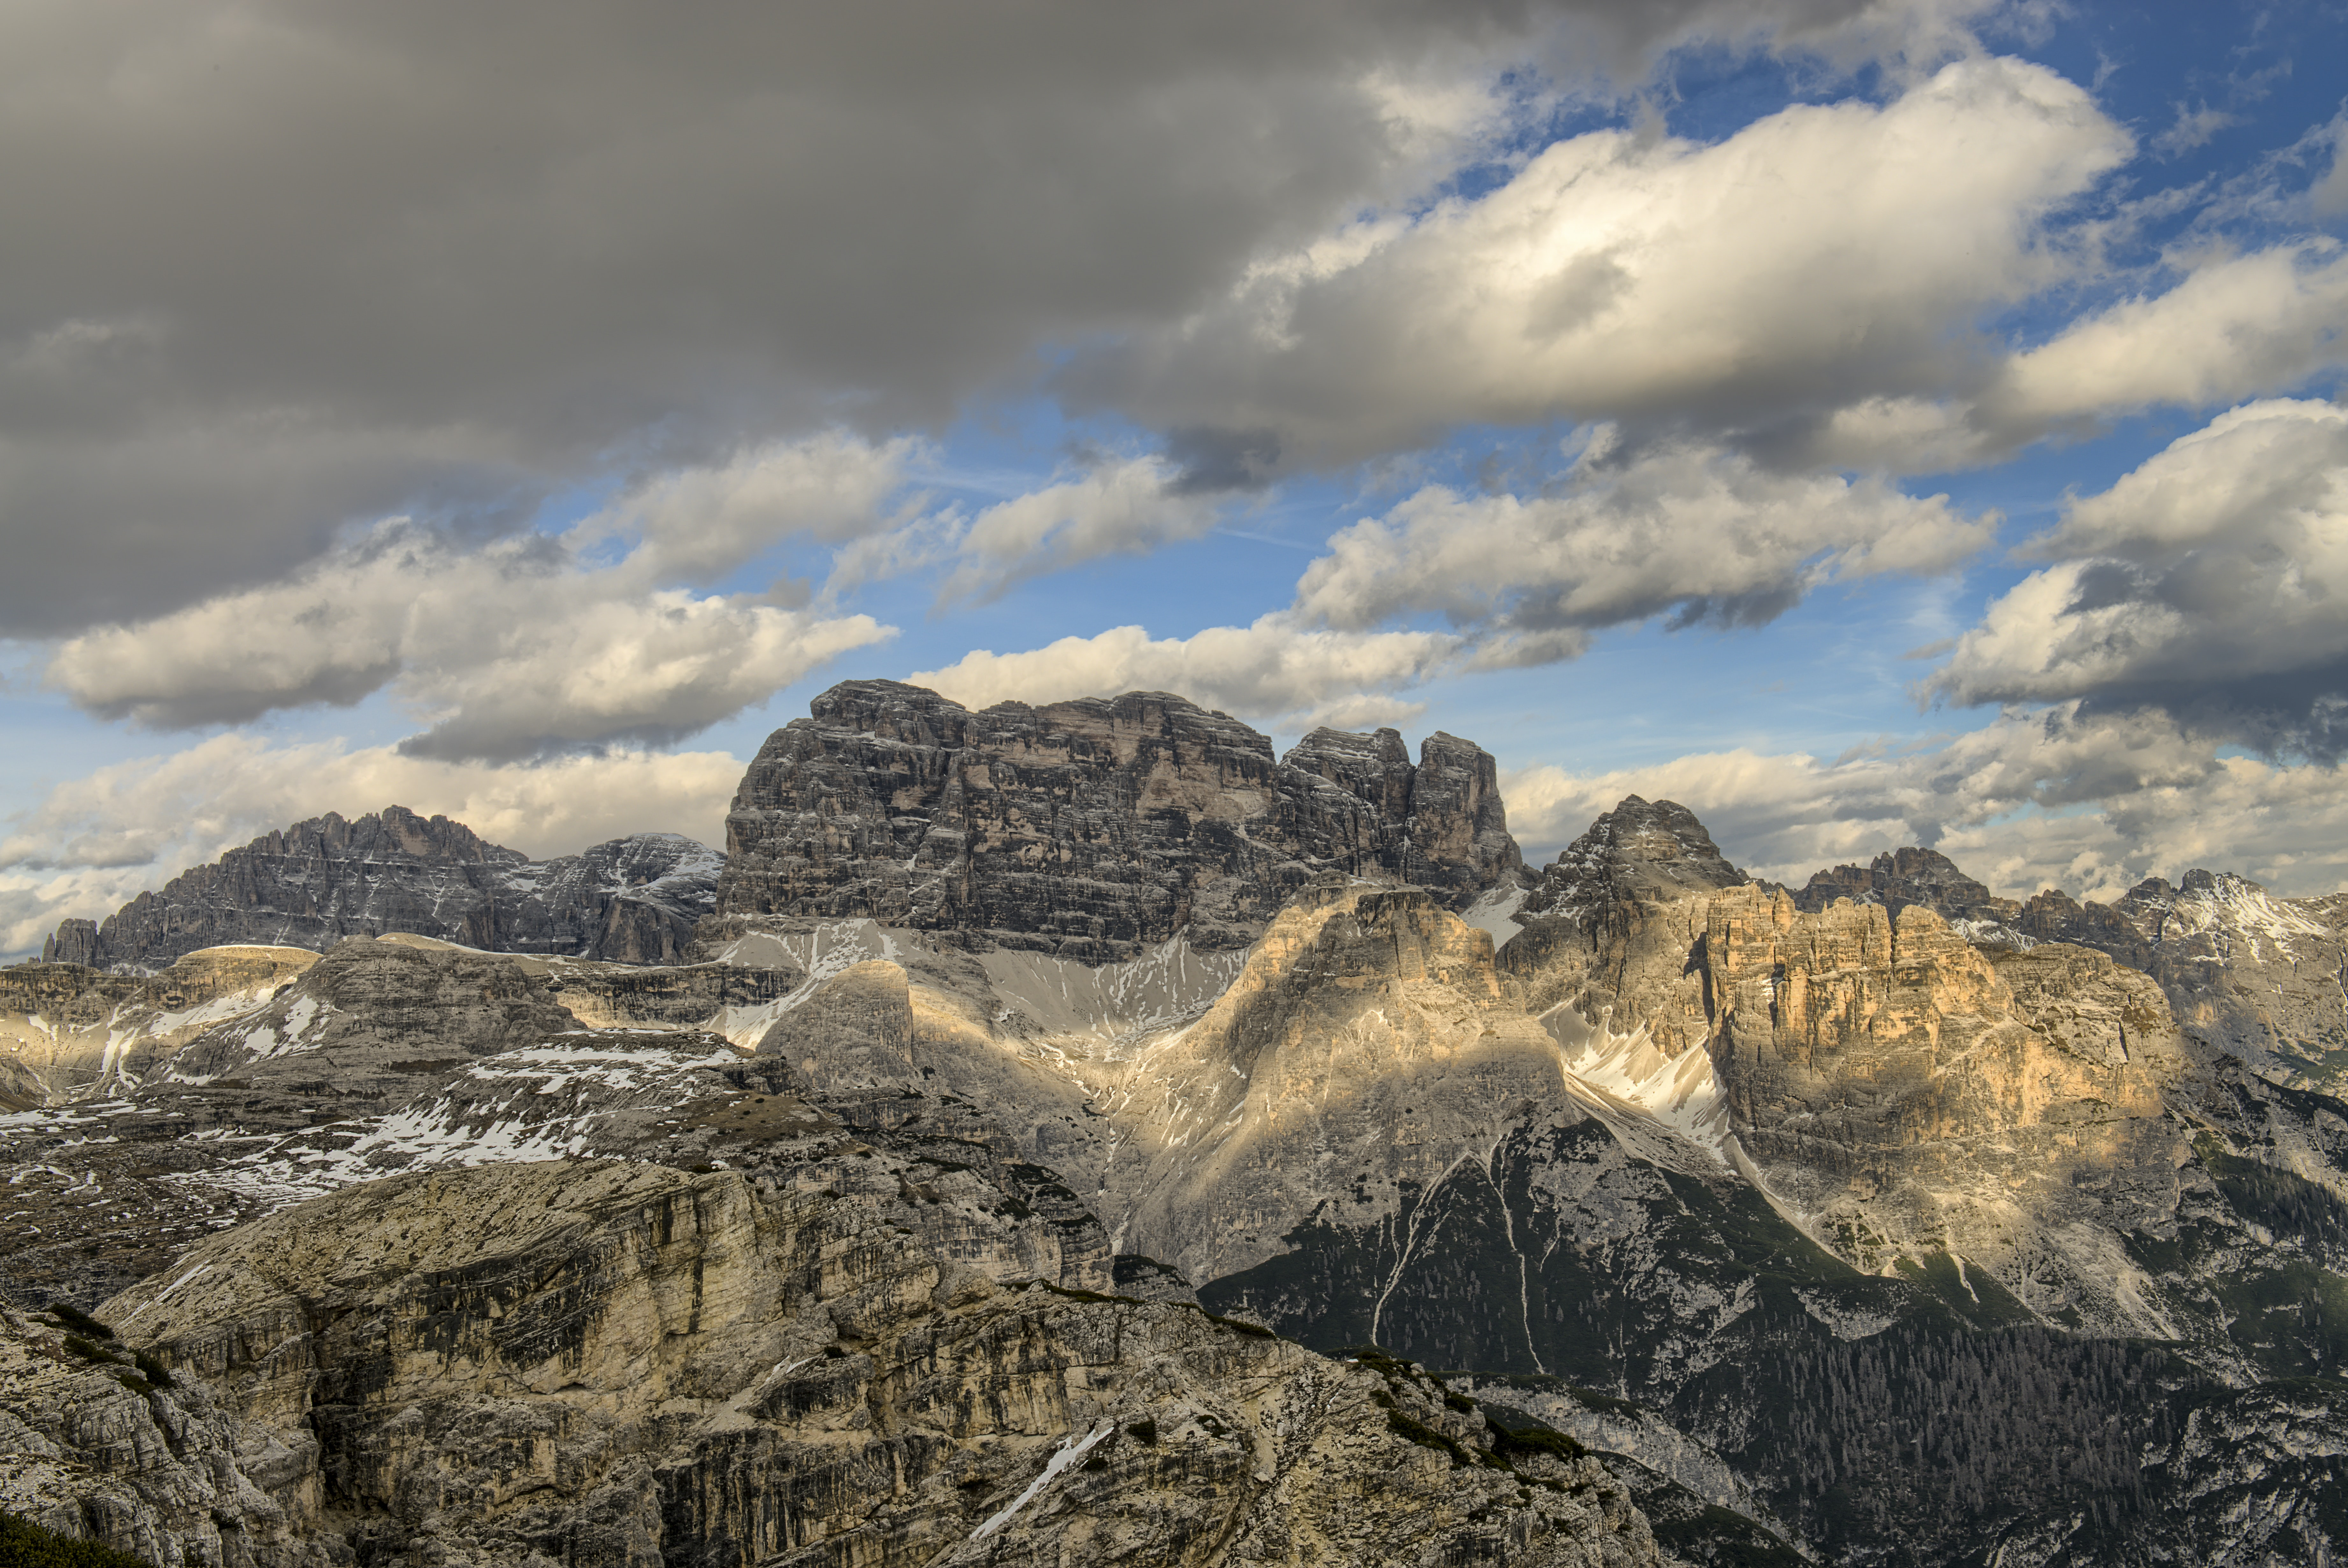 Tall rock towers in the Dolomites under a cloudy sky